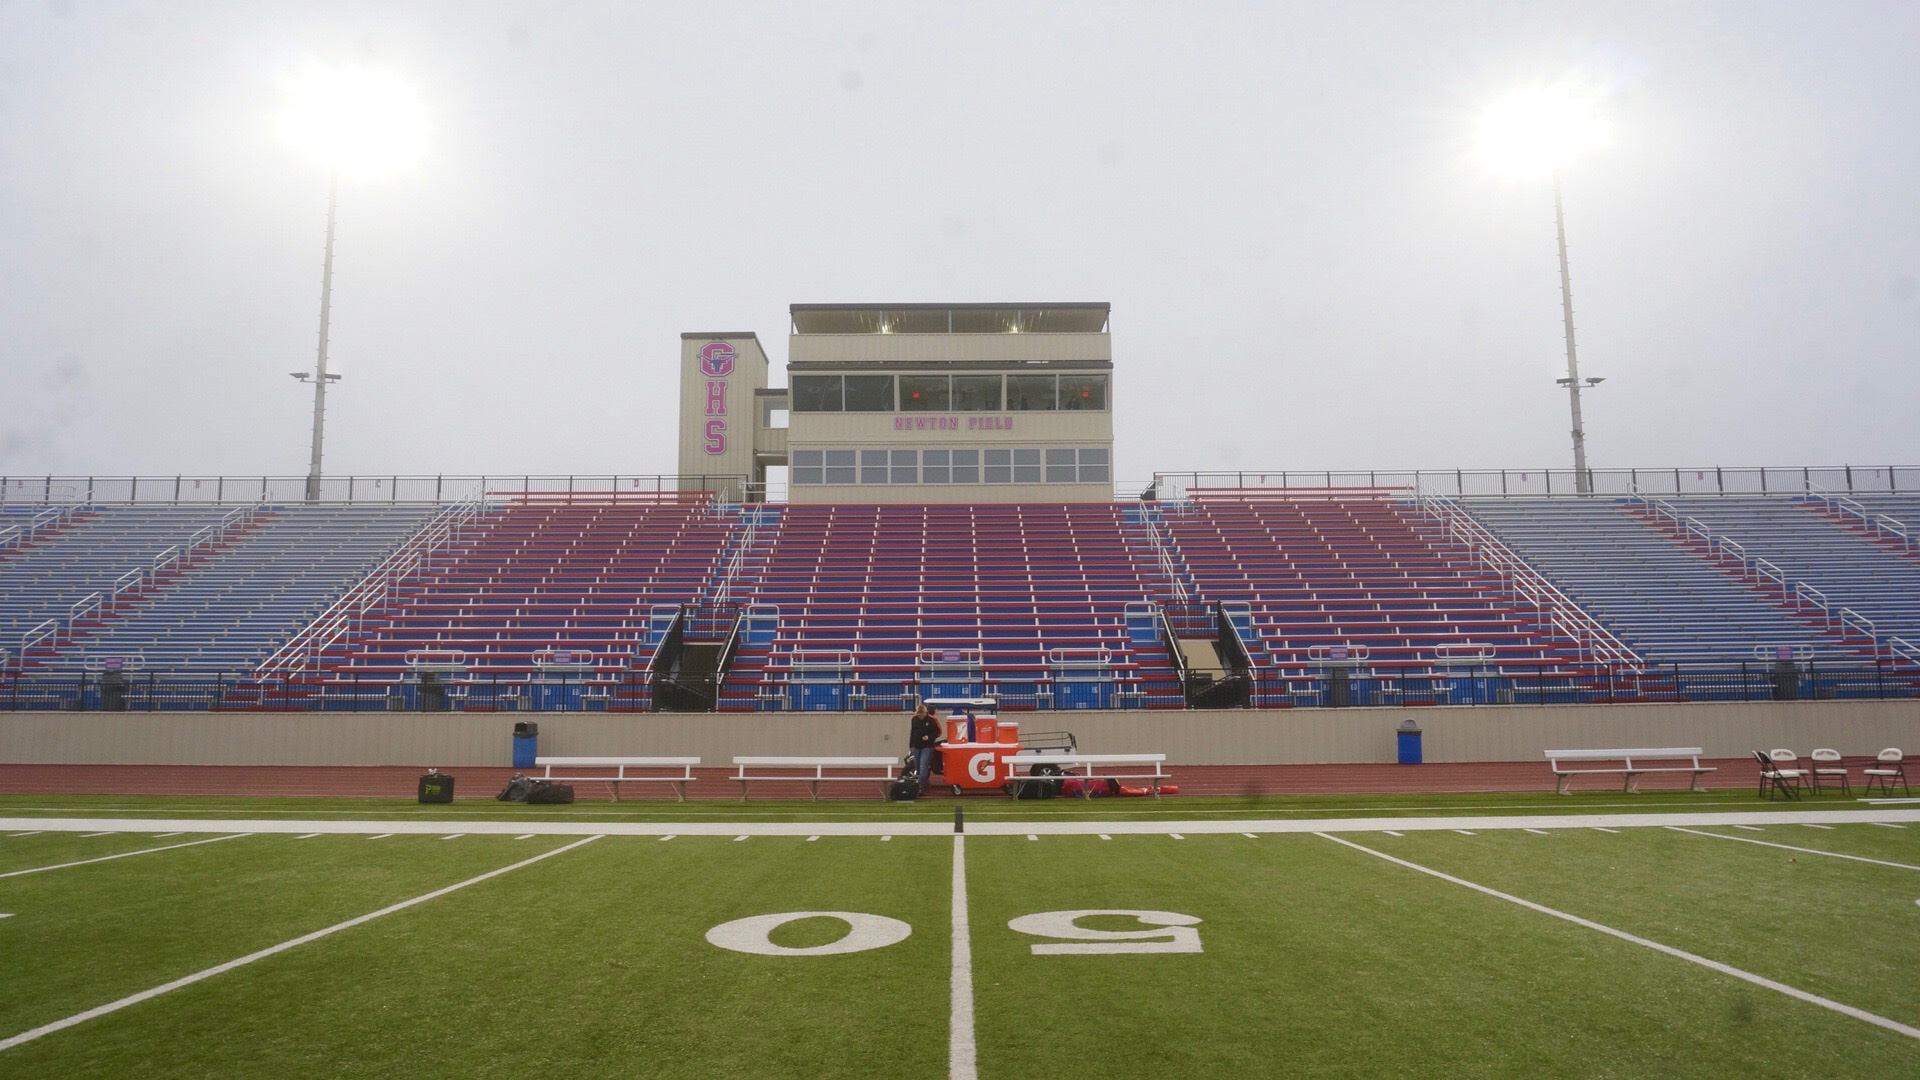 A foggy Newton Field prior to the start of the Wall vs. Pilot Point regional payoff game in Graham, Texas on Nov. 29, 2019. (LIVE! Photo/Joe Z. Hyde)